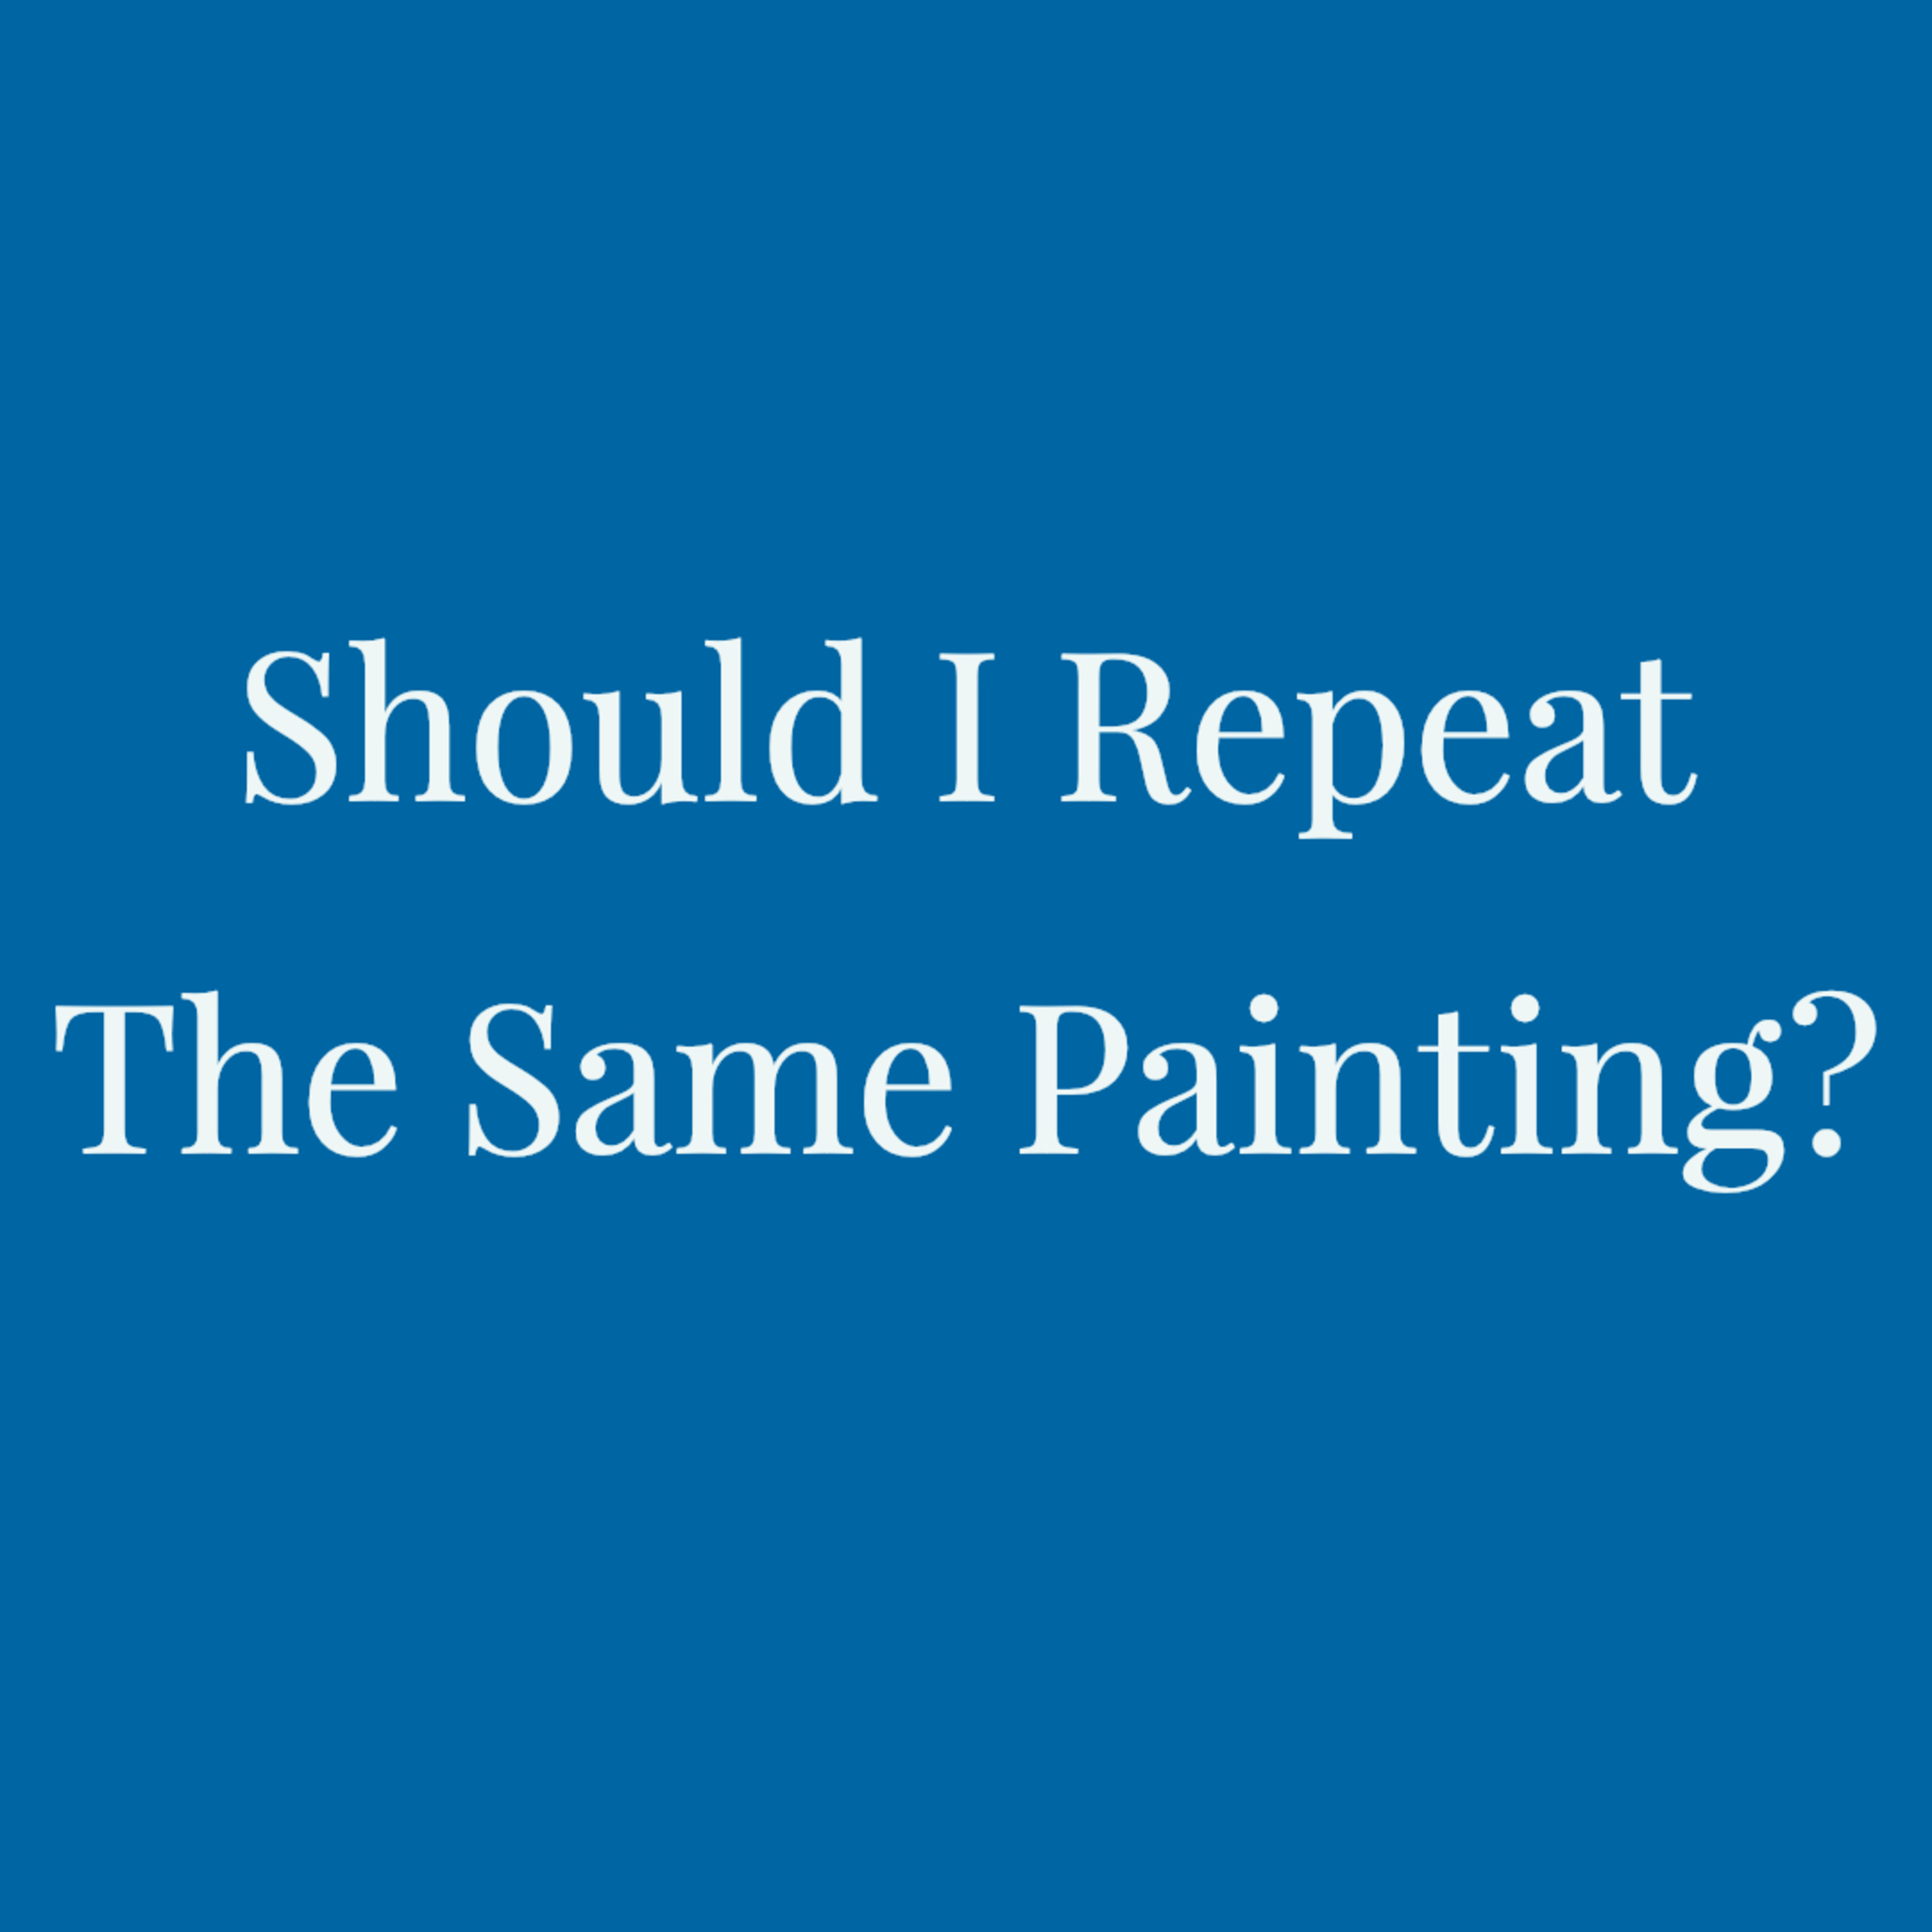 Should I Repeat The Same Painting?